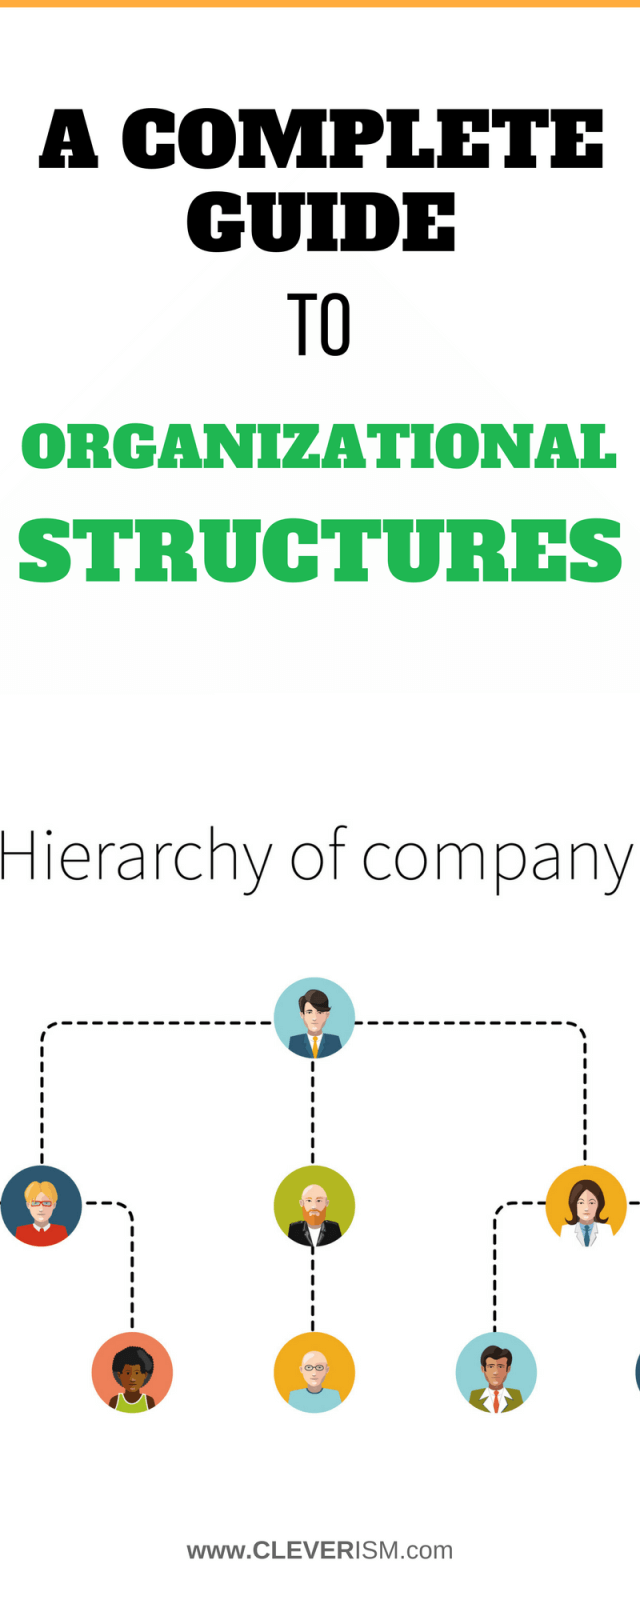 what is organizational structures How is amazon structured organizationally update cancel answer wiki  it's very difficult to describe amazon organizational structure in a short quora answer.